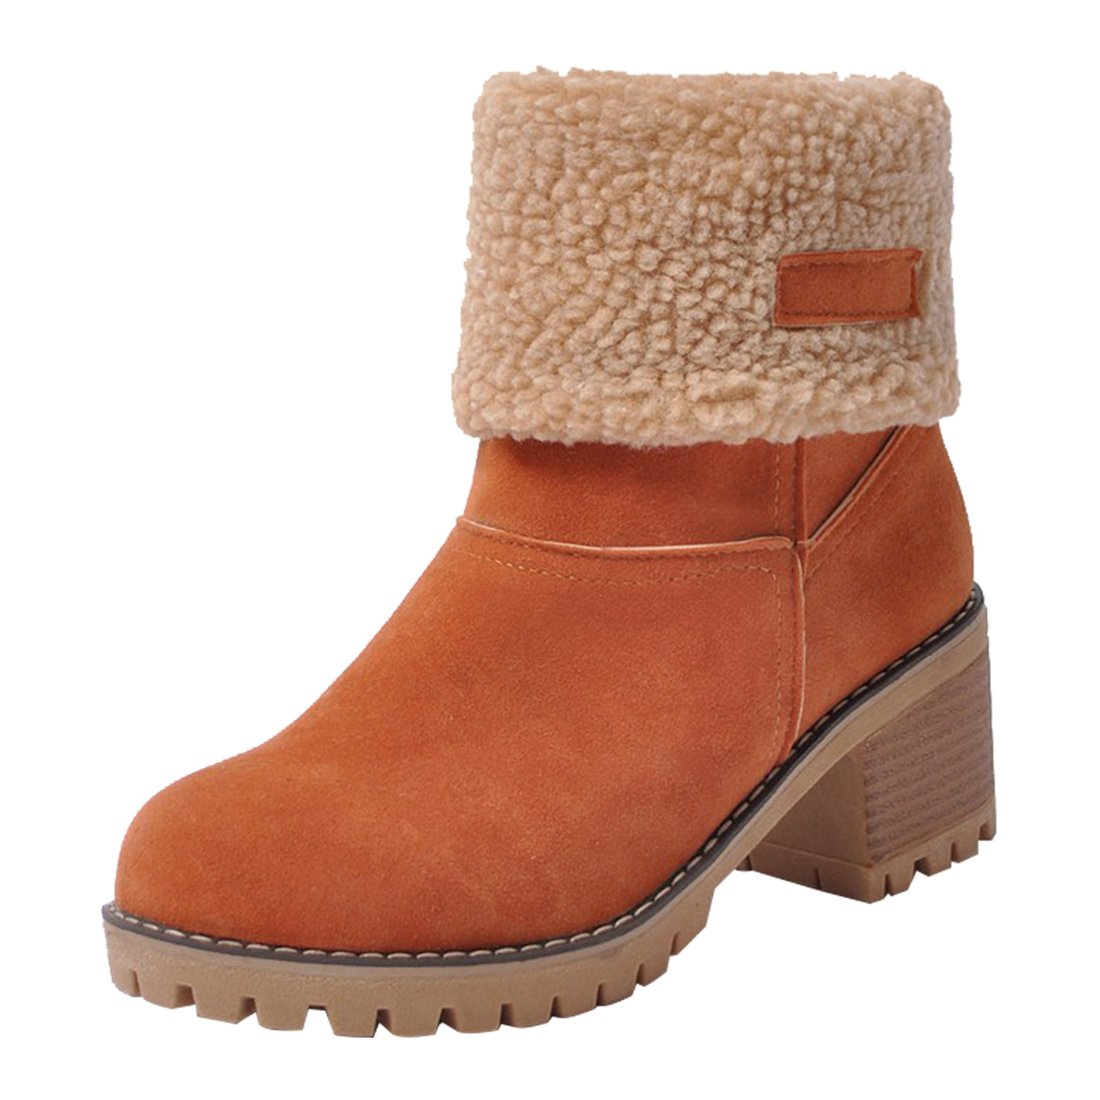 orange MORNISN Womens Winter Snow Boots Round Toe Suede Chunky mid Heel Faux Fur Warm Ankle Booties